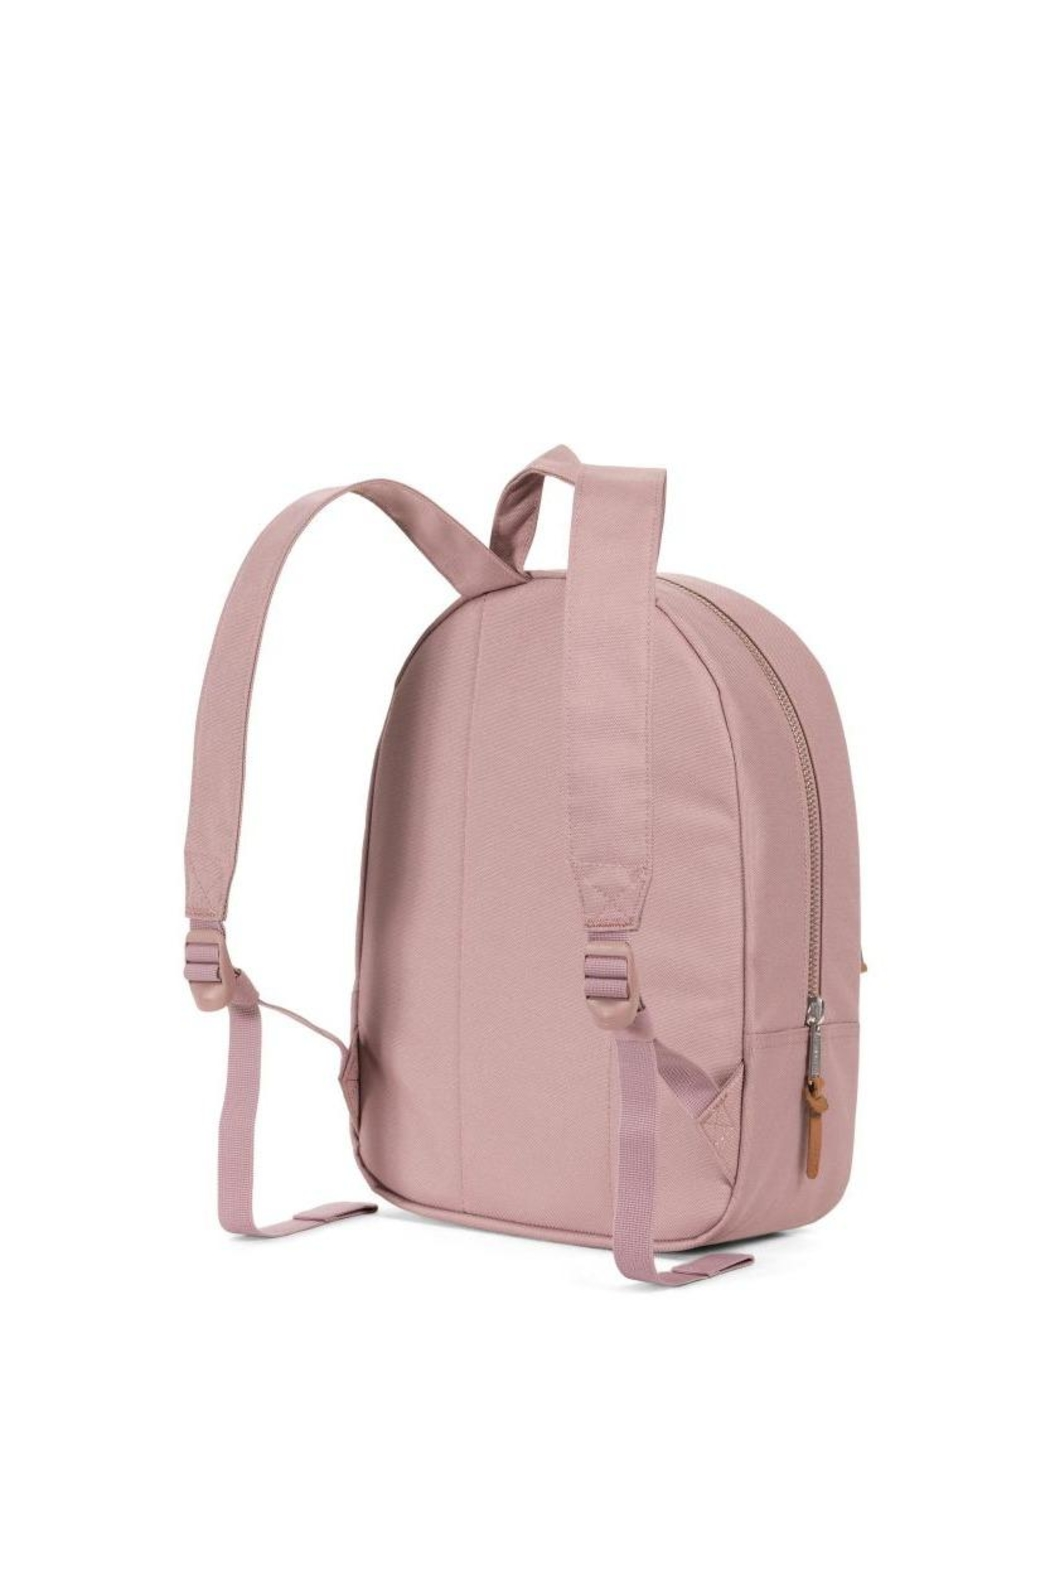 Herschel Supply Co. Small Pink Backpack - Back Cropped Image